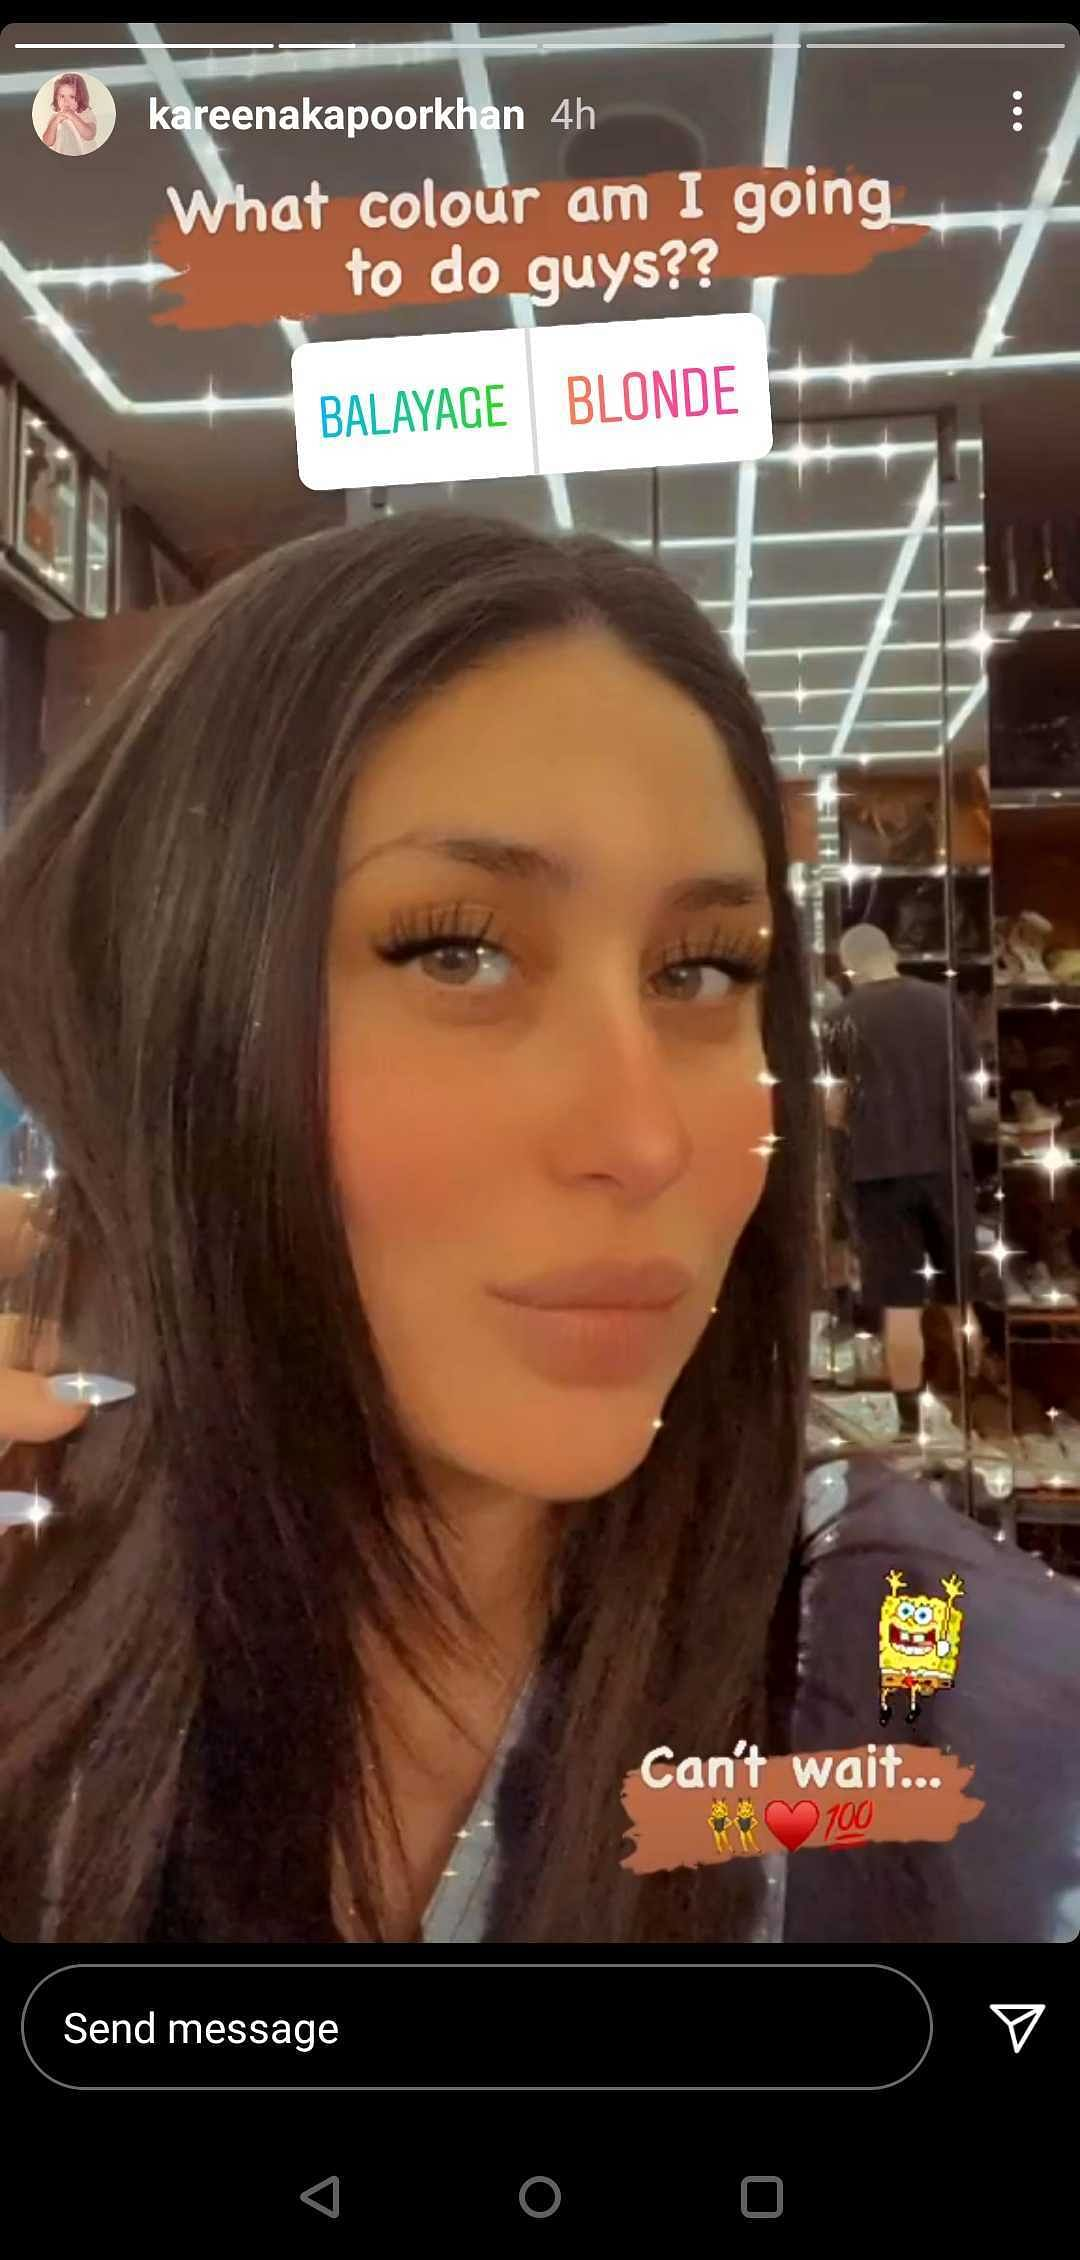 'Ready for more burp cloths, diapers': Kareena Kapoor Khan undergoes hair transformation - check out her latest look